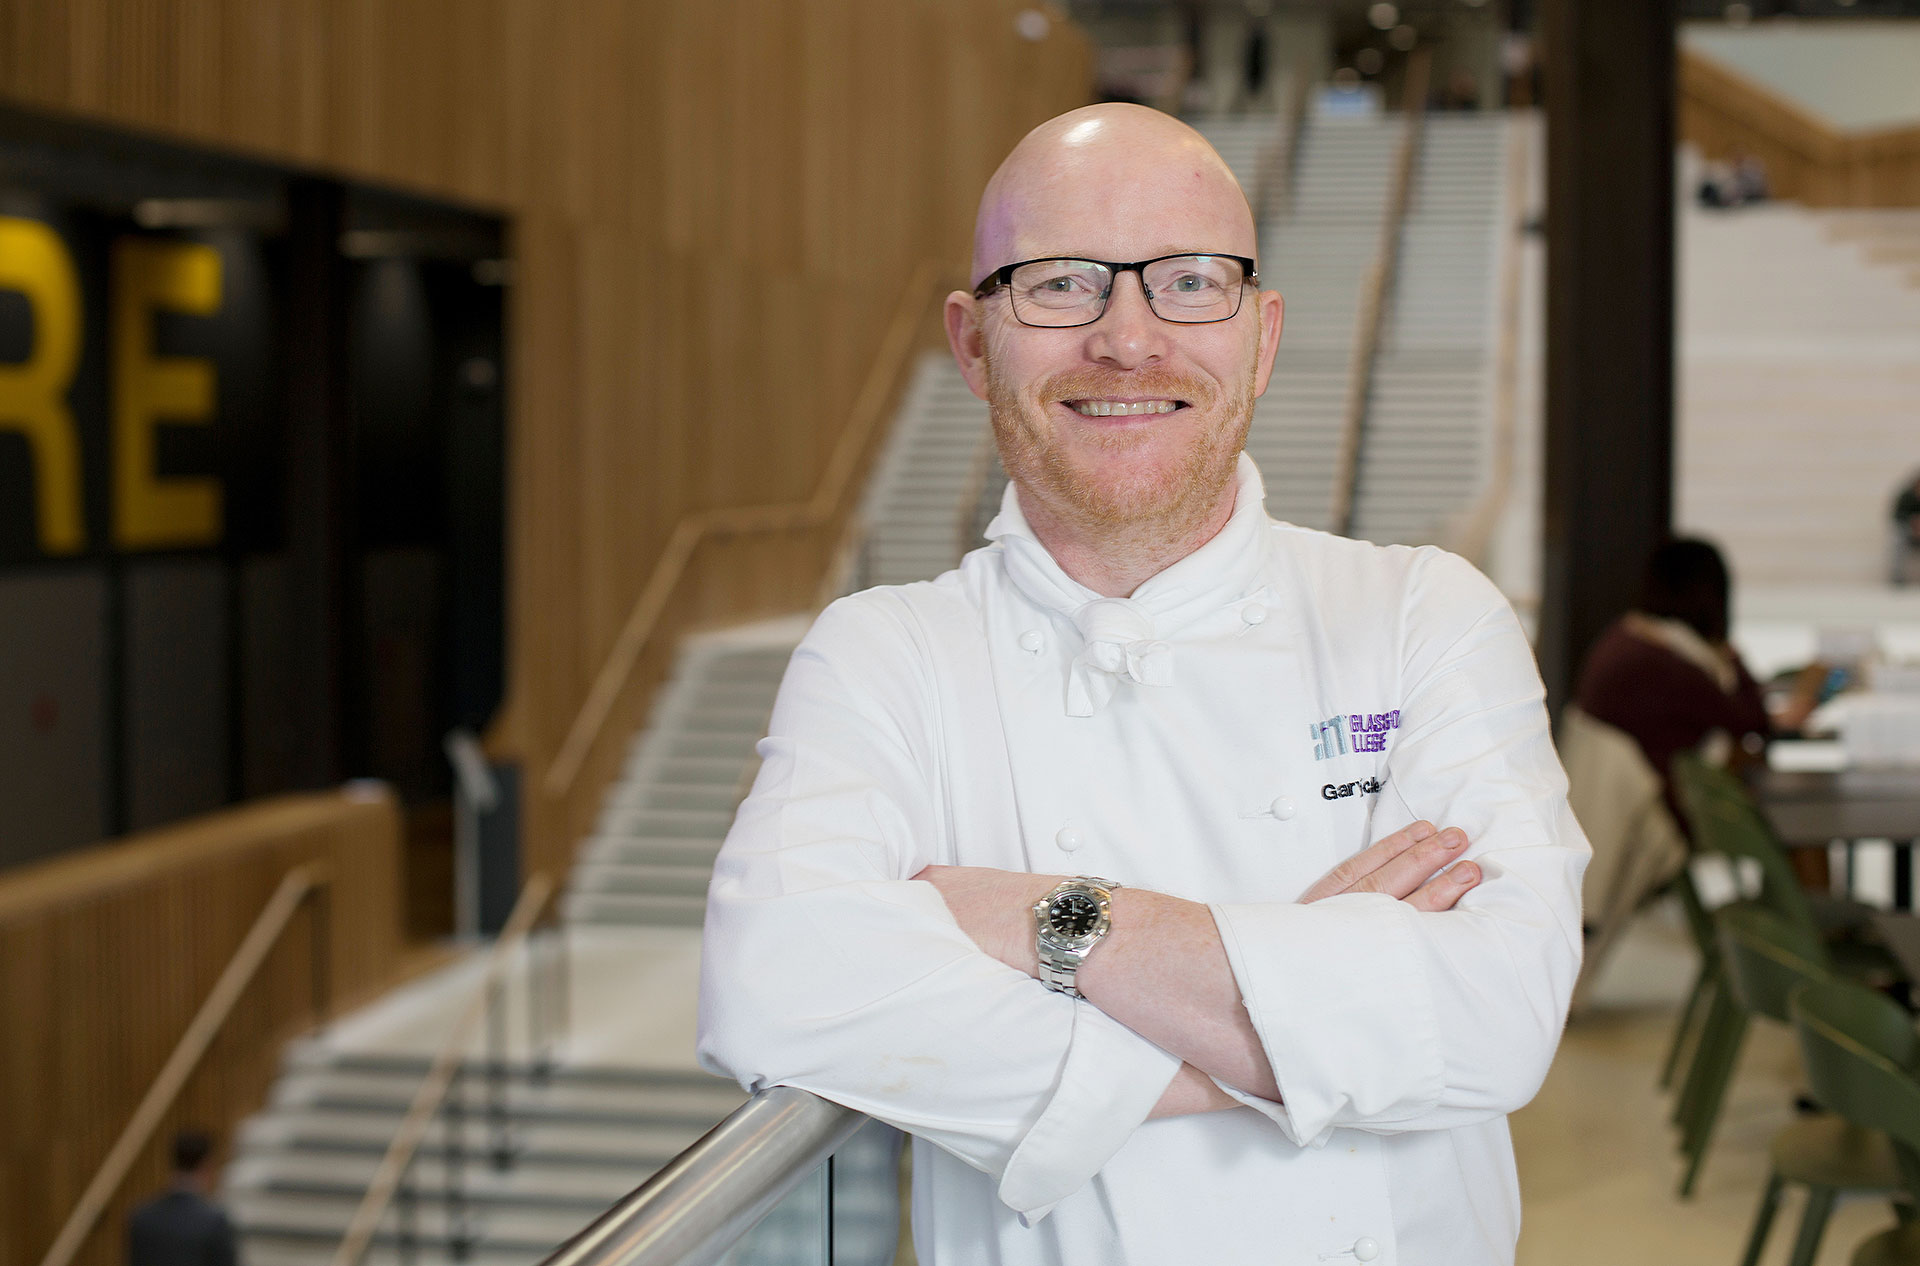 Consultancy - Gary Maclean - Award winning Chef